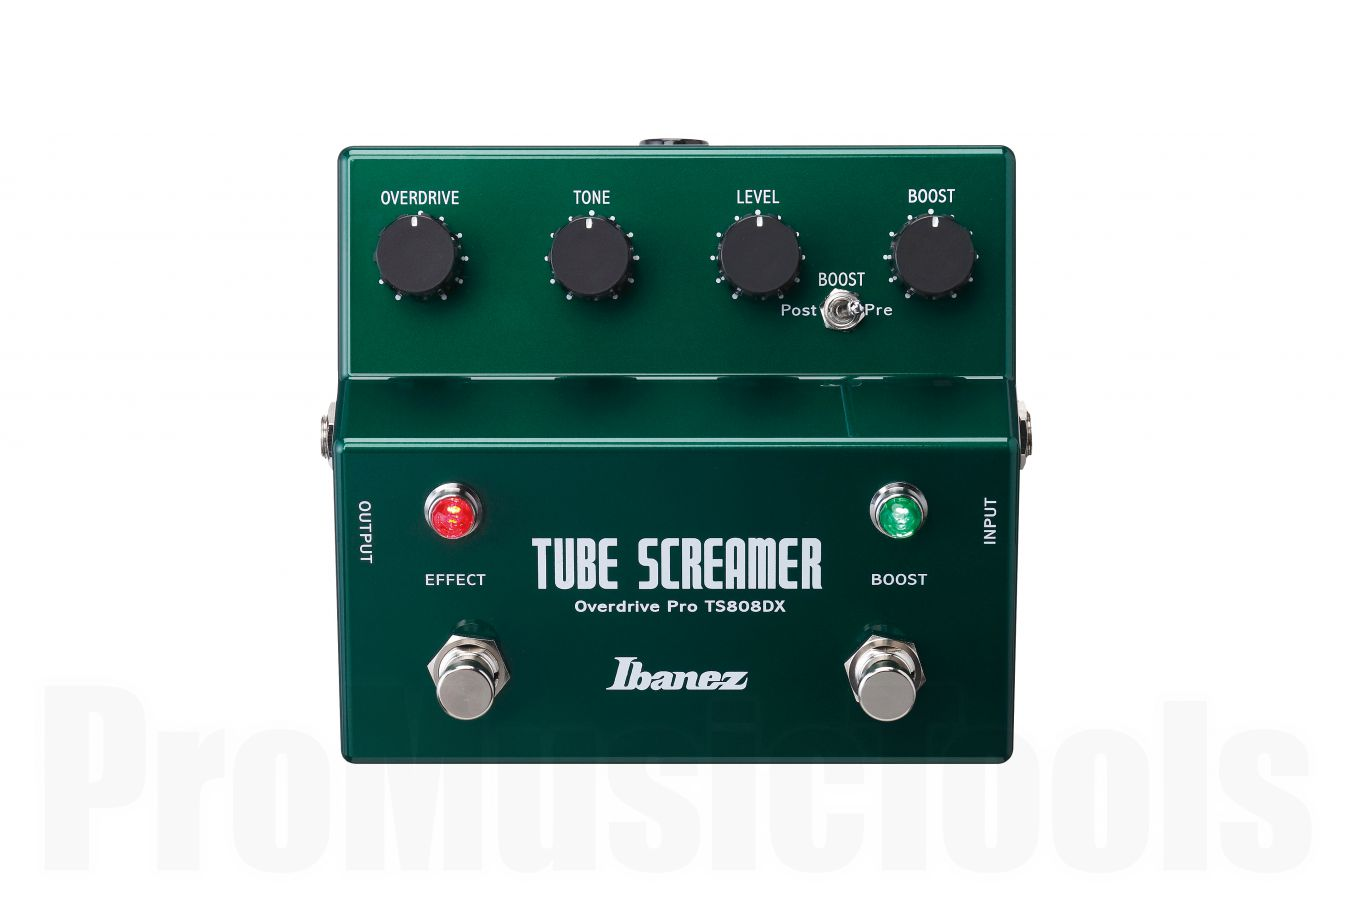 Ibanez TS808DX Tube Screamer with boost - b-stock (1x opened box)